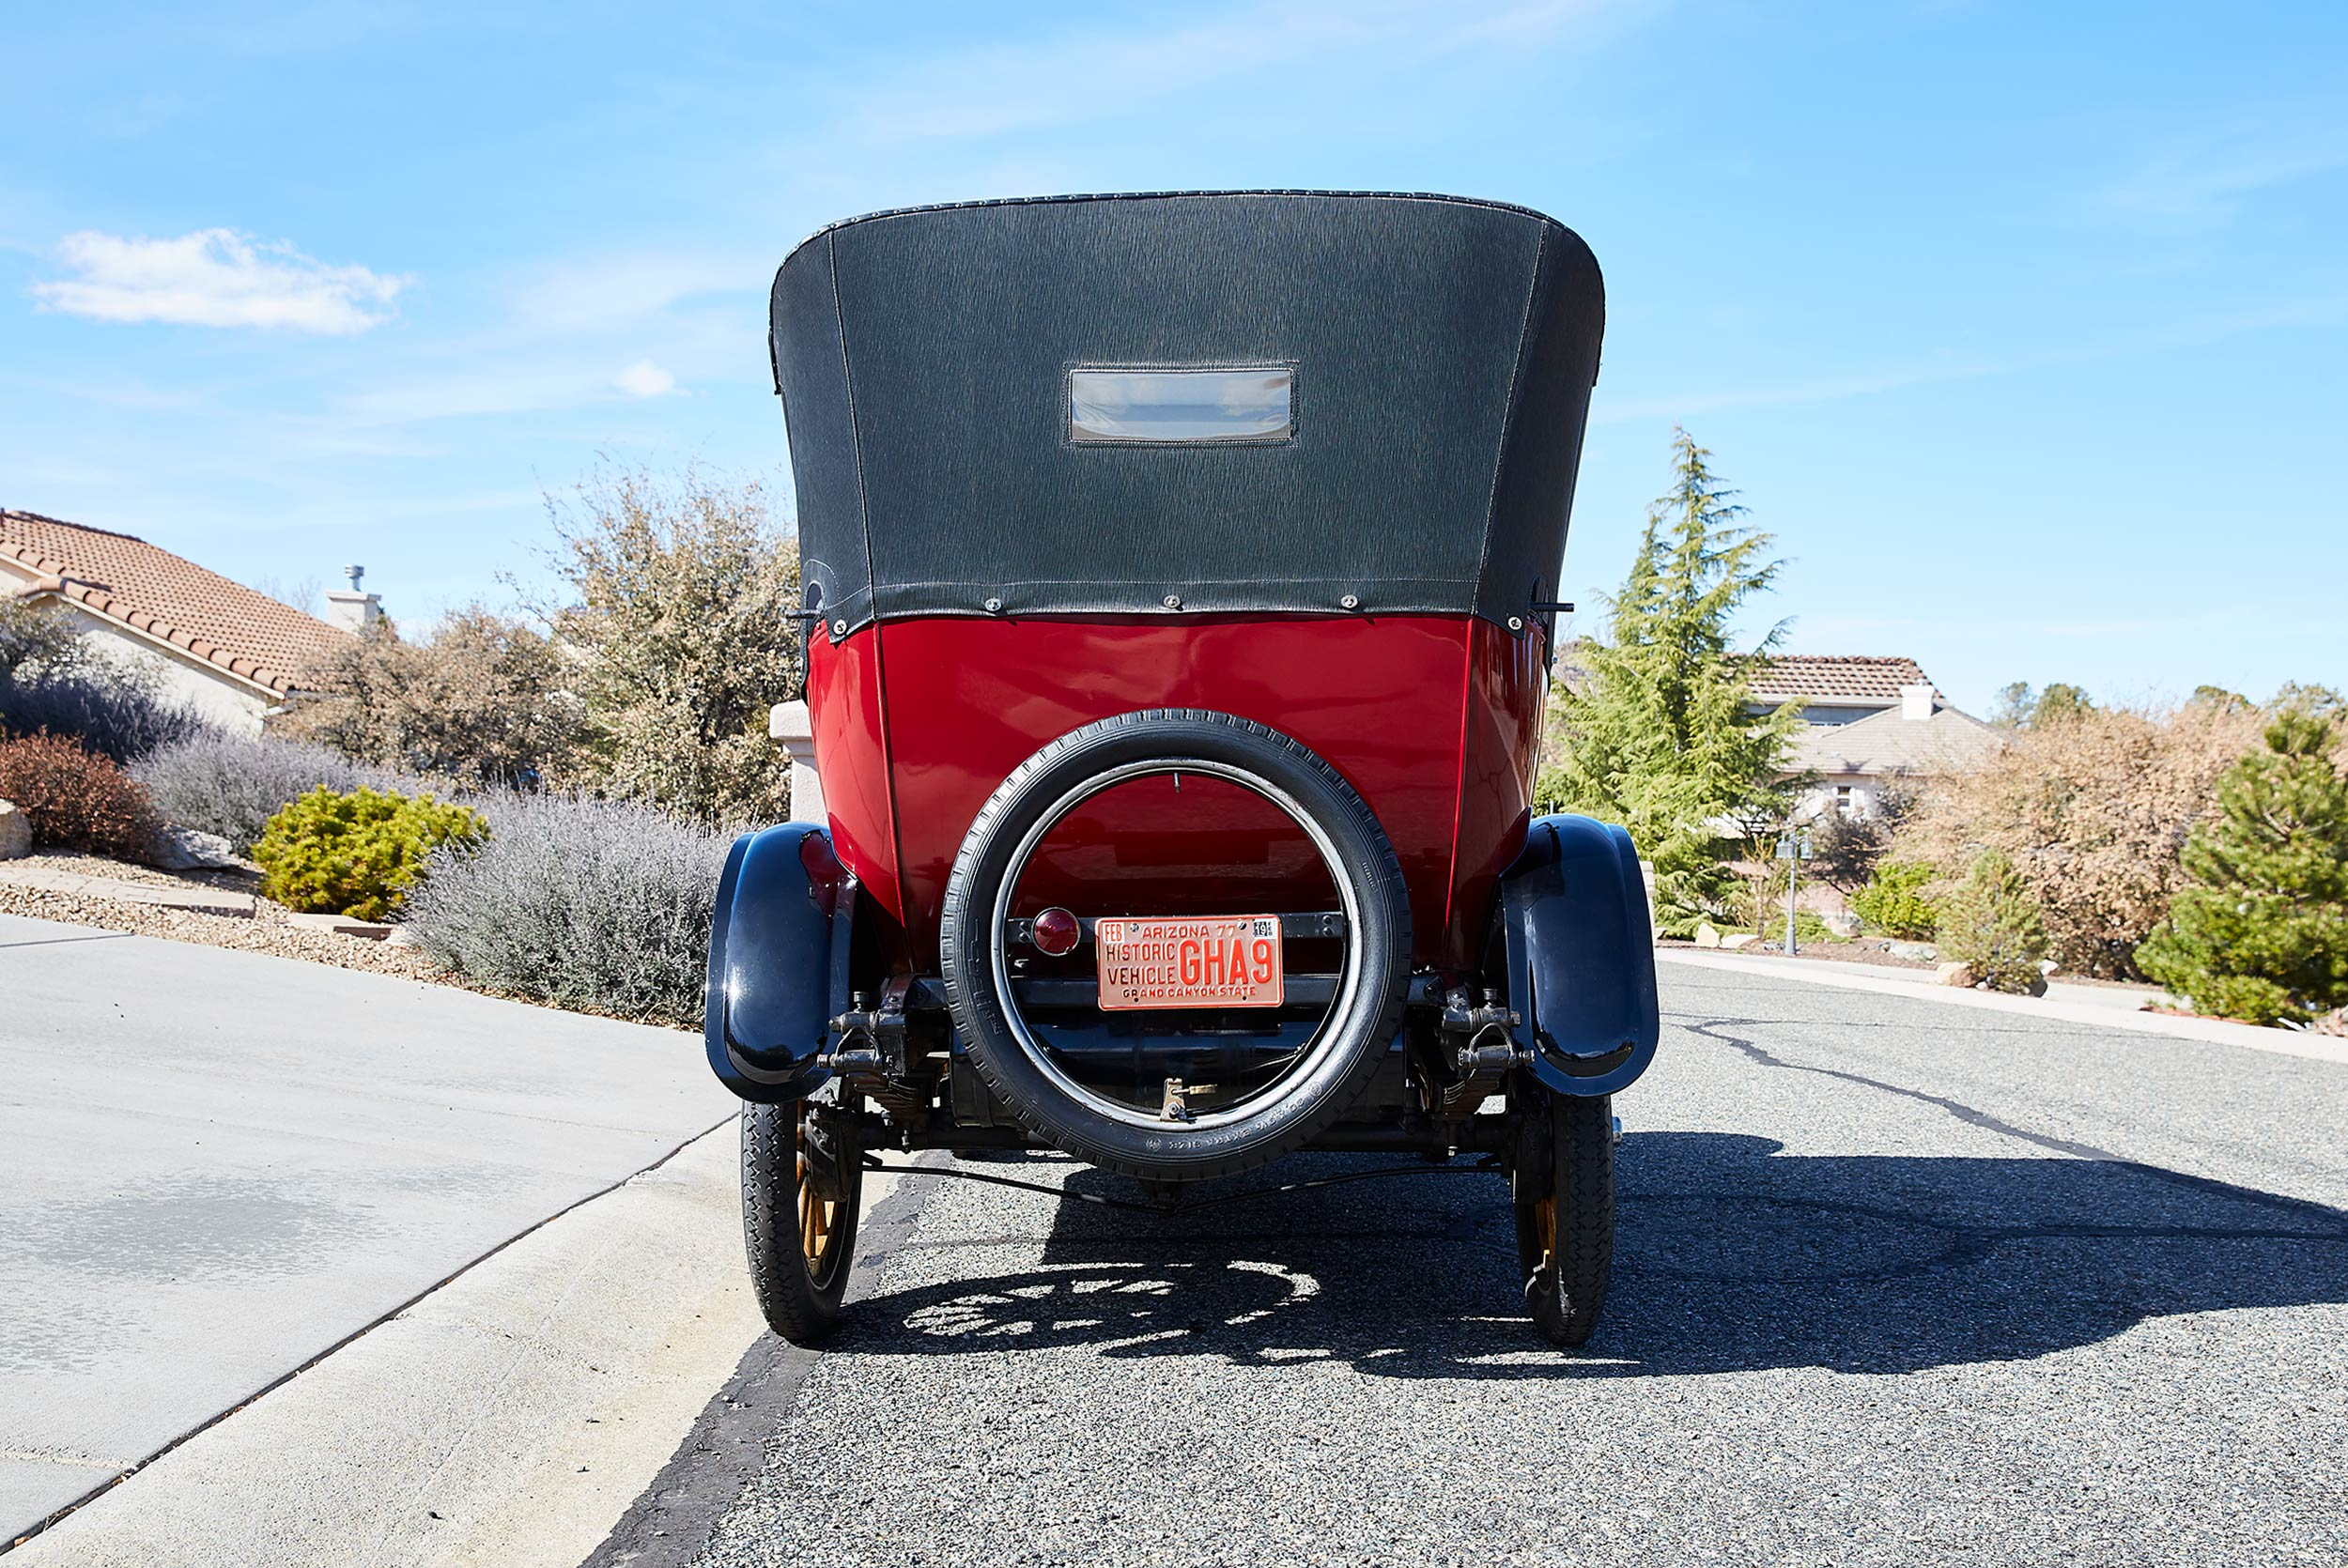 1918 Buick Touring Car WSJ - Steve Craft Photography - Phoenix Arizona Portrait Photographer